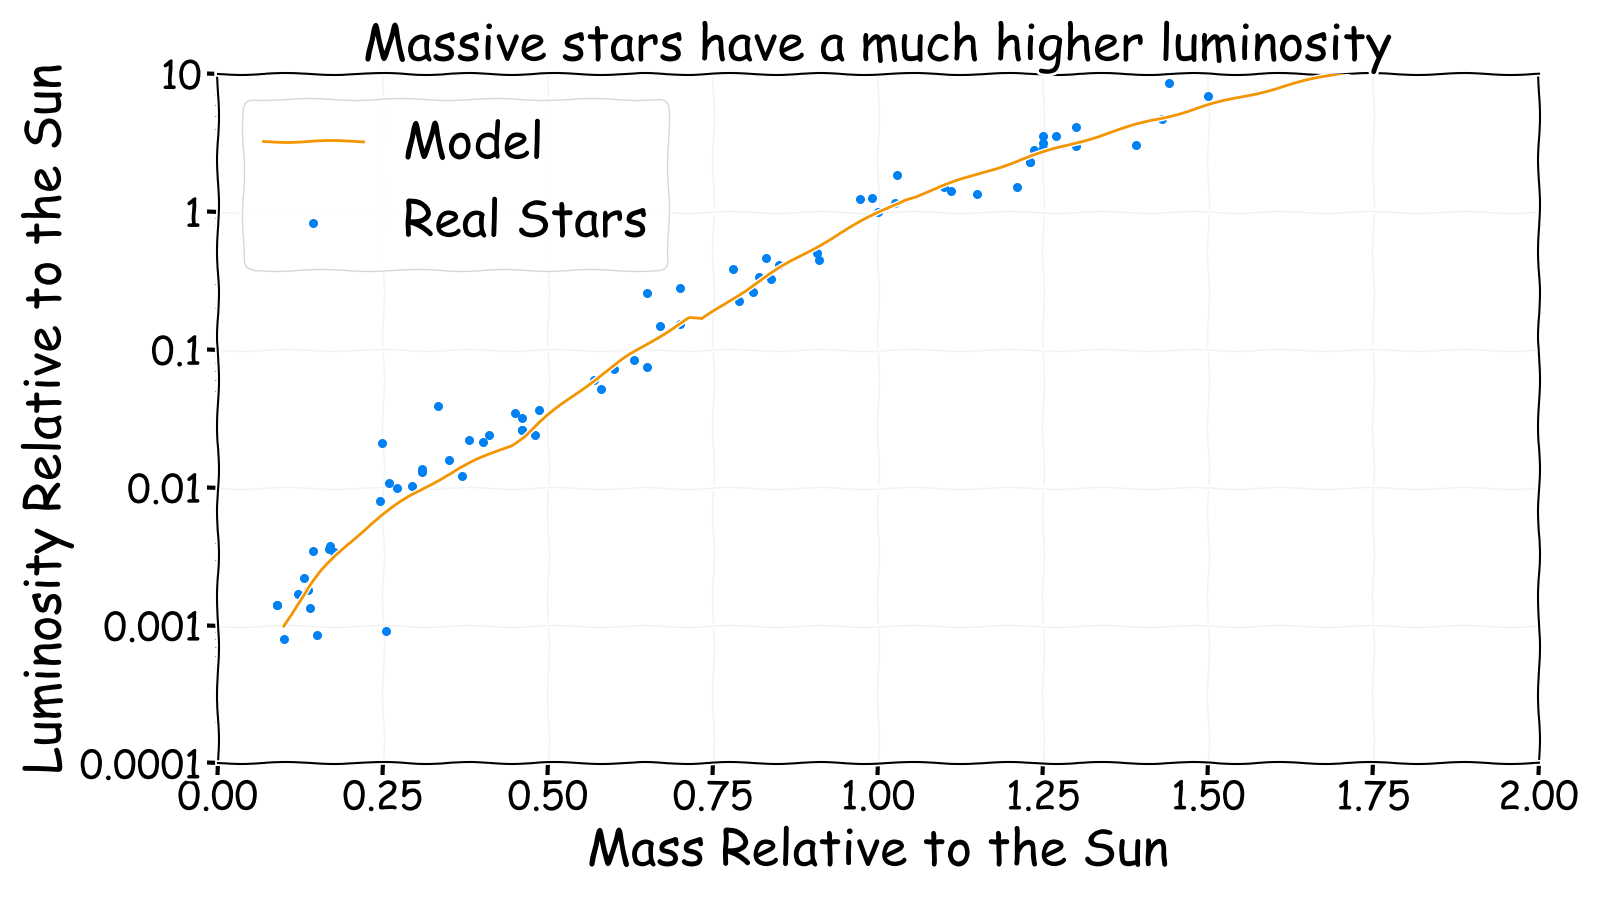 Massive stars have a much higher luminosity